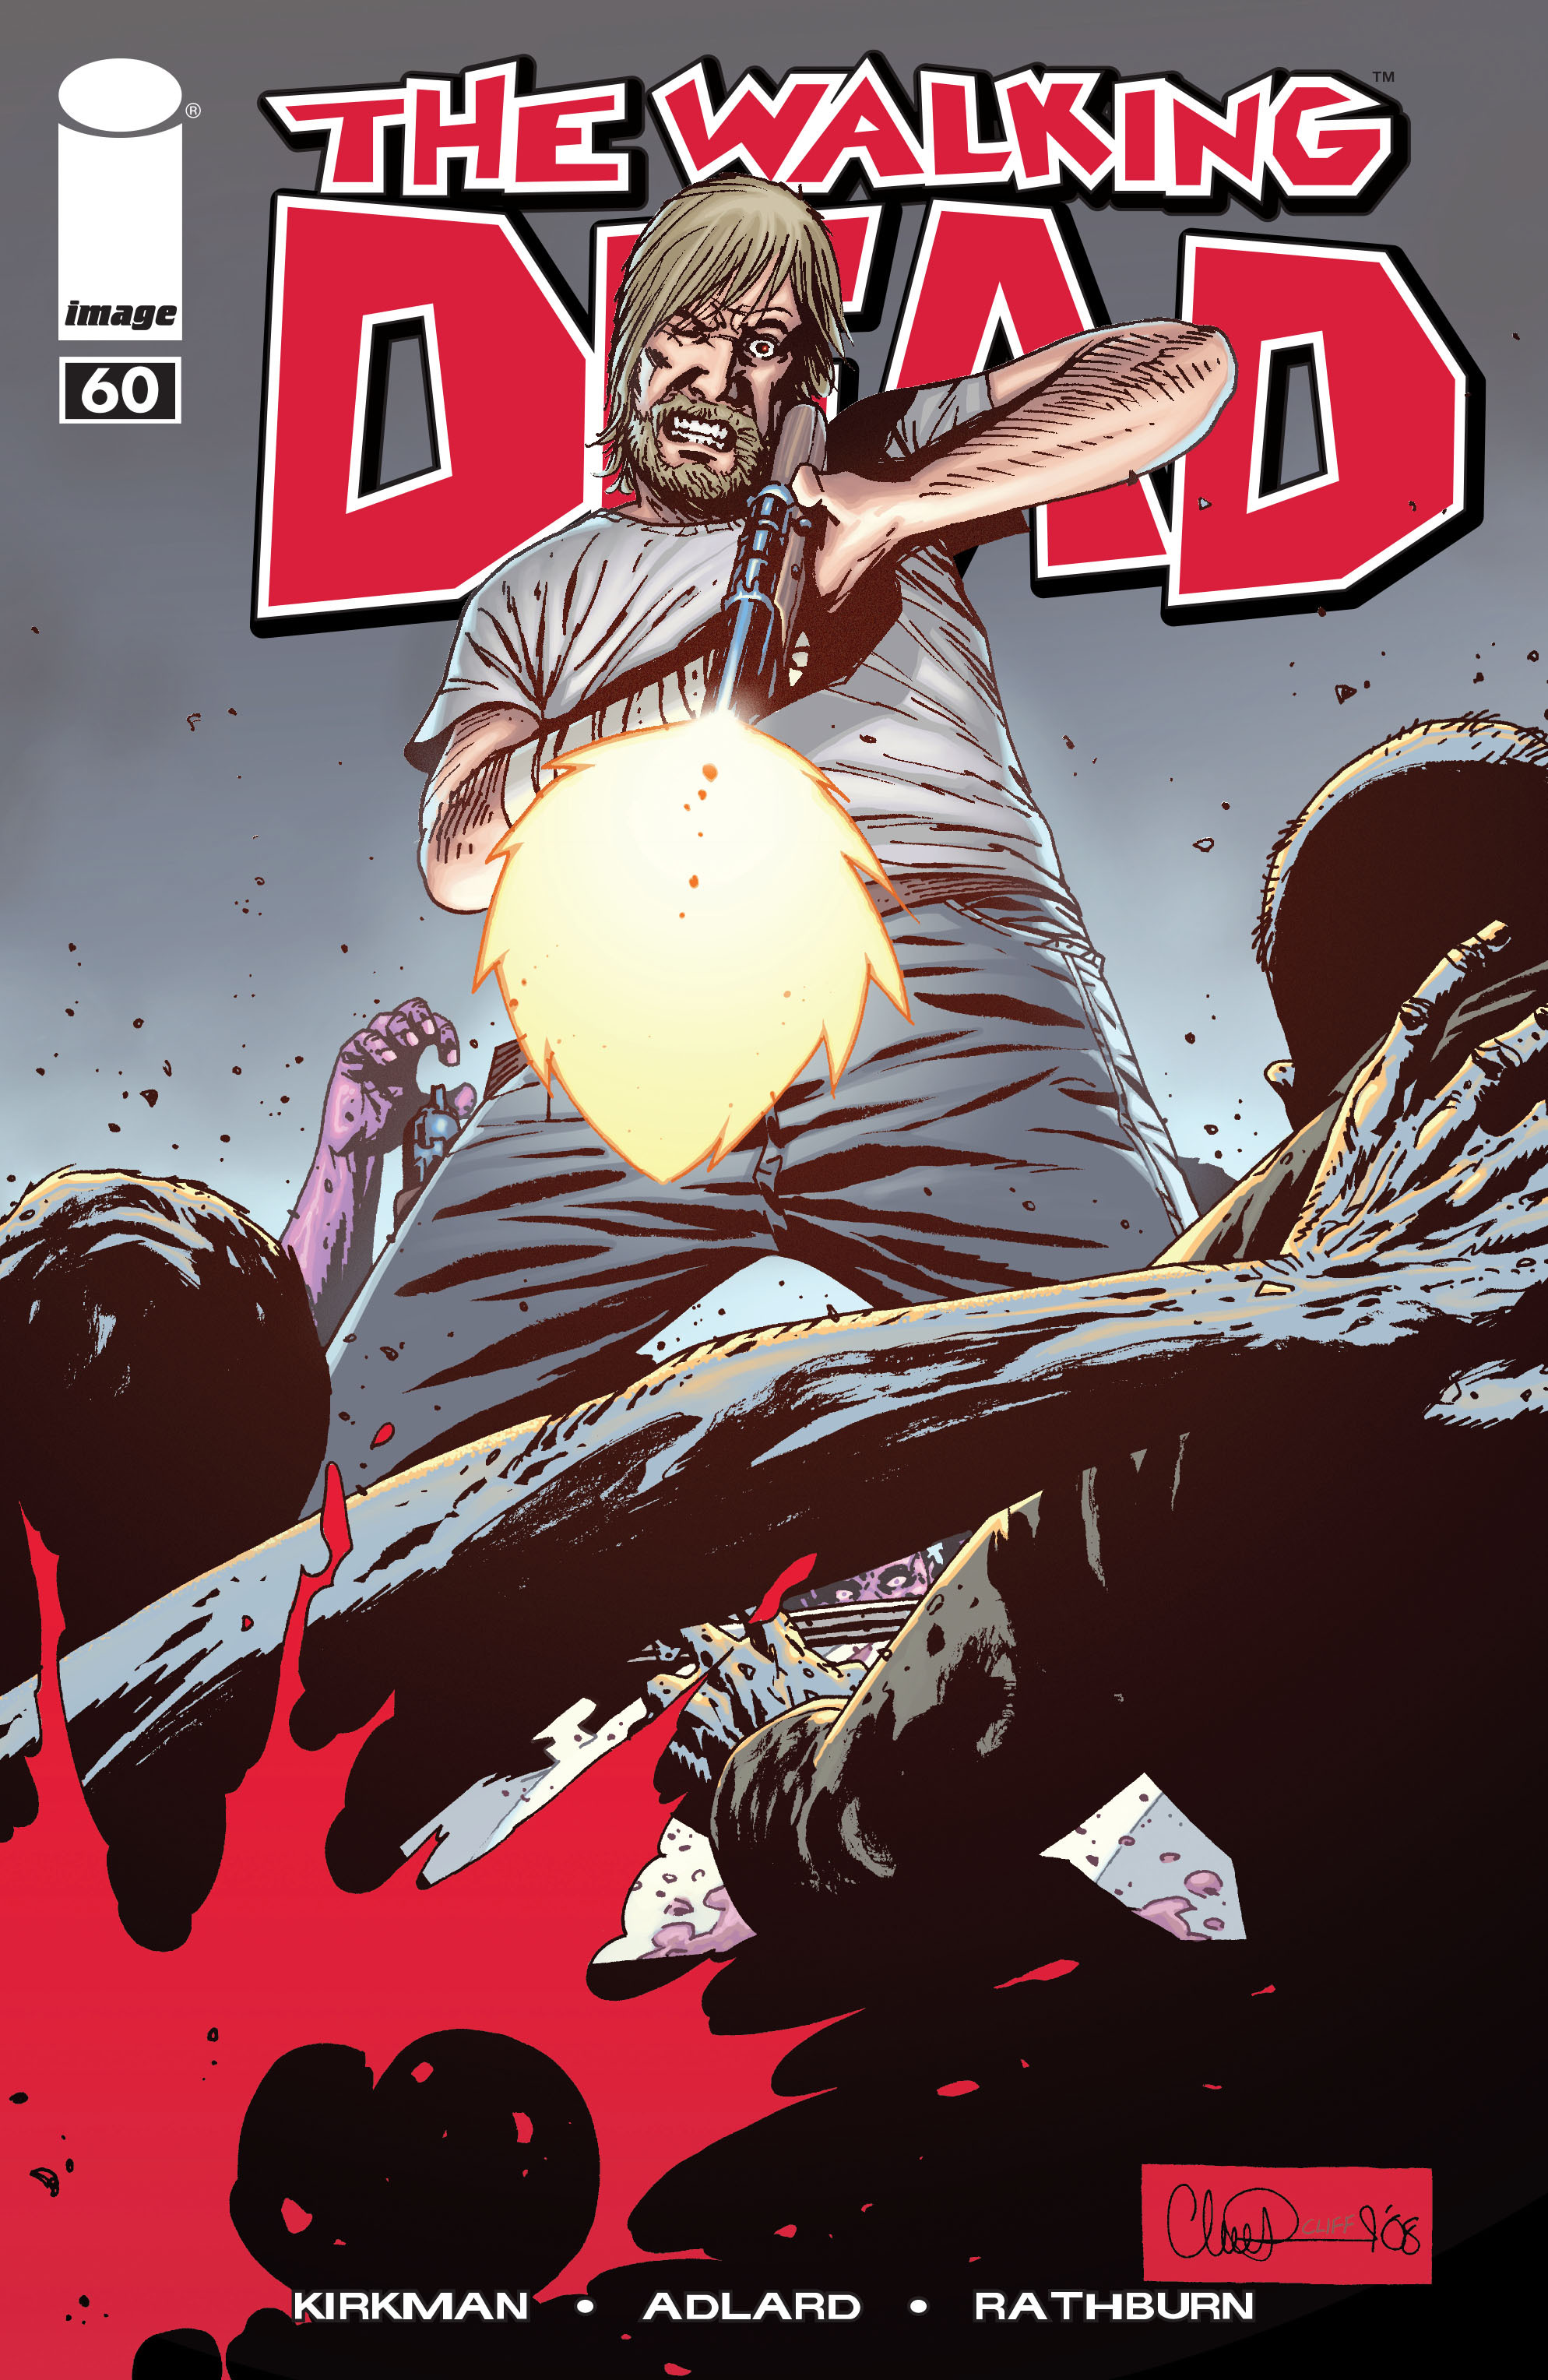 The Walking Dead 60 Page 1